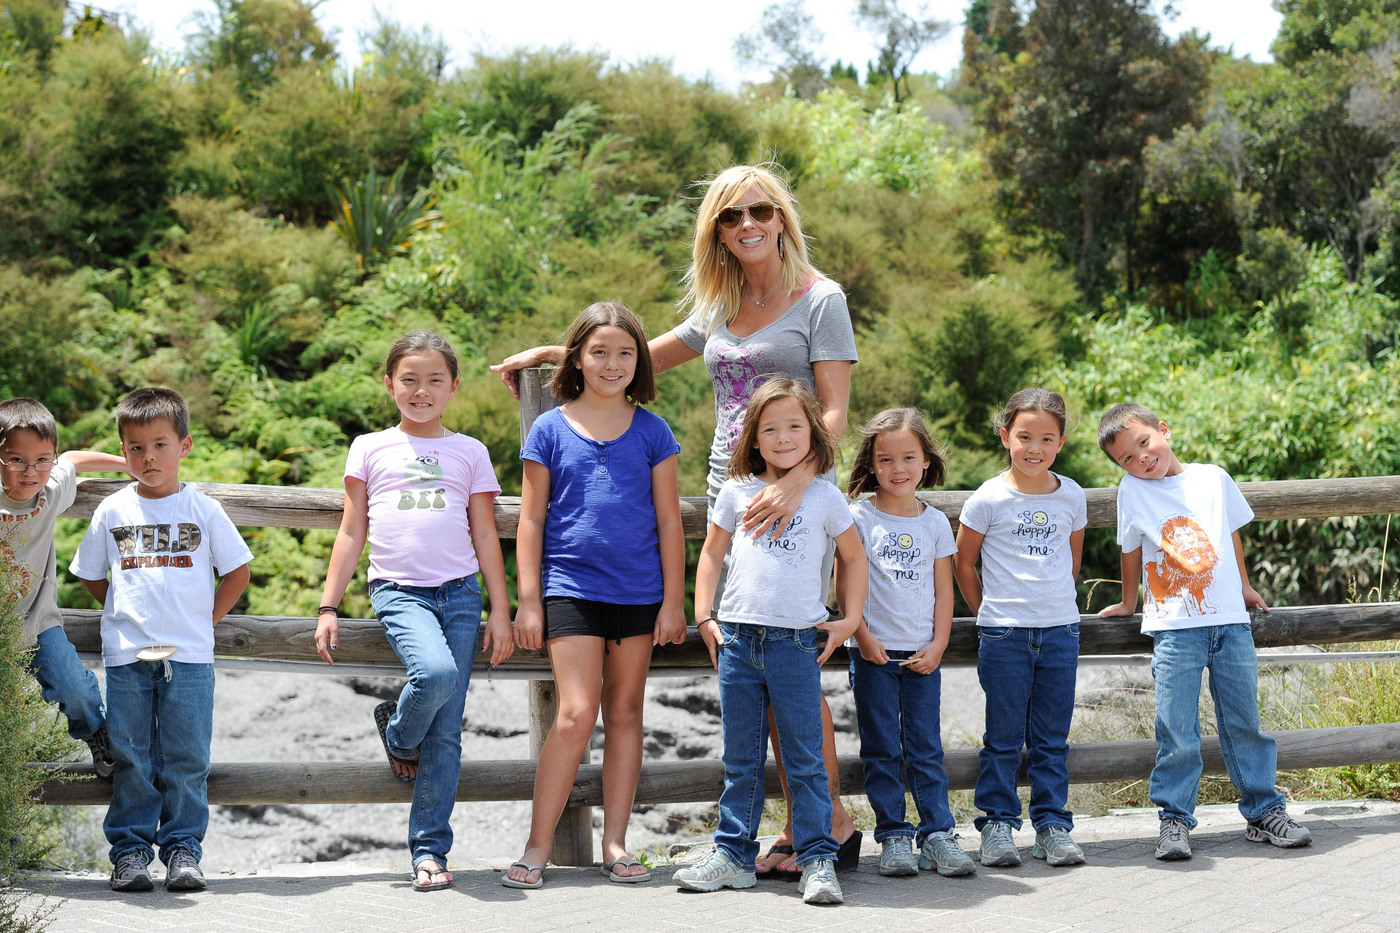 Kate Gosselin continues her day out with her 8 children at the natural springs in Rotorua